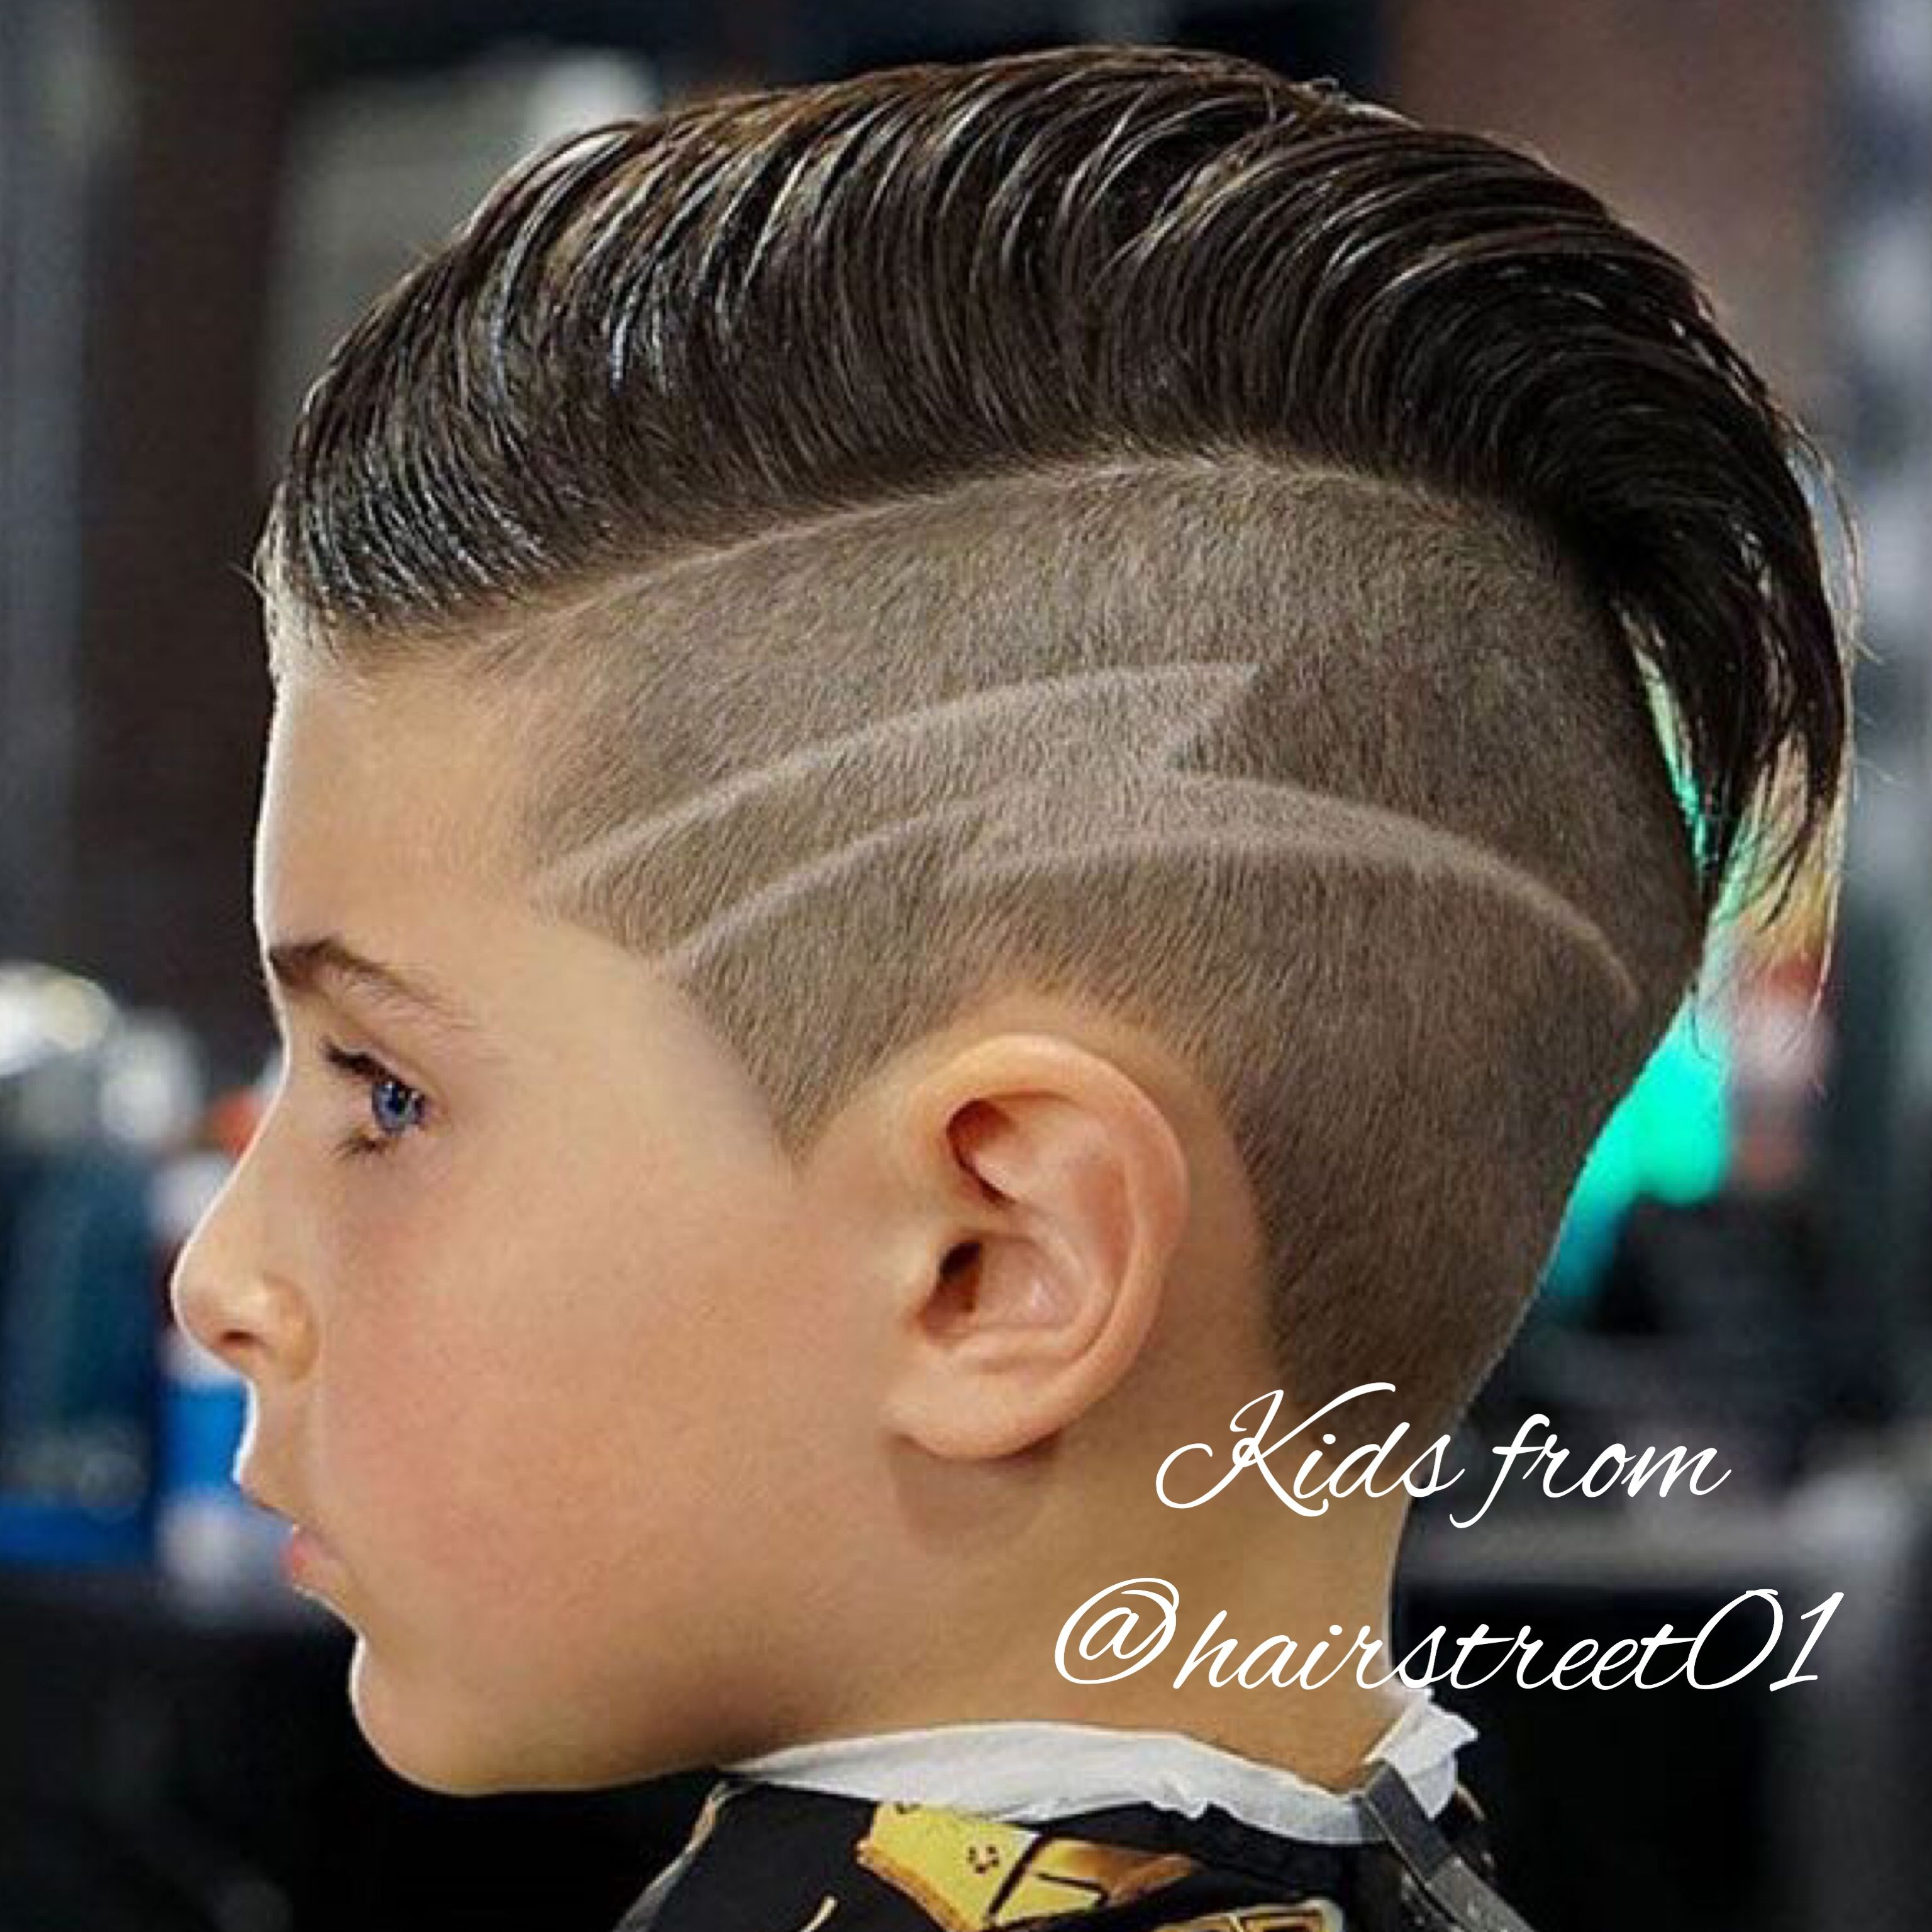 Pin By Den On Volosy Short Hair For Boys Little Boy Haircuts Cute Boys Haircuts